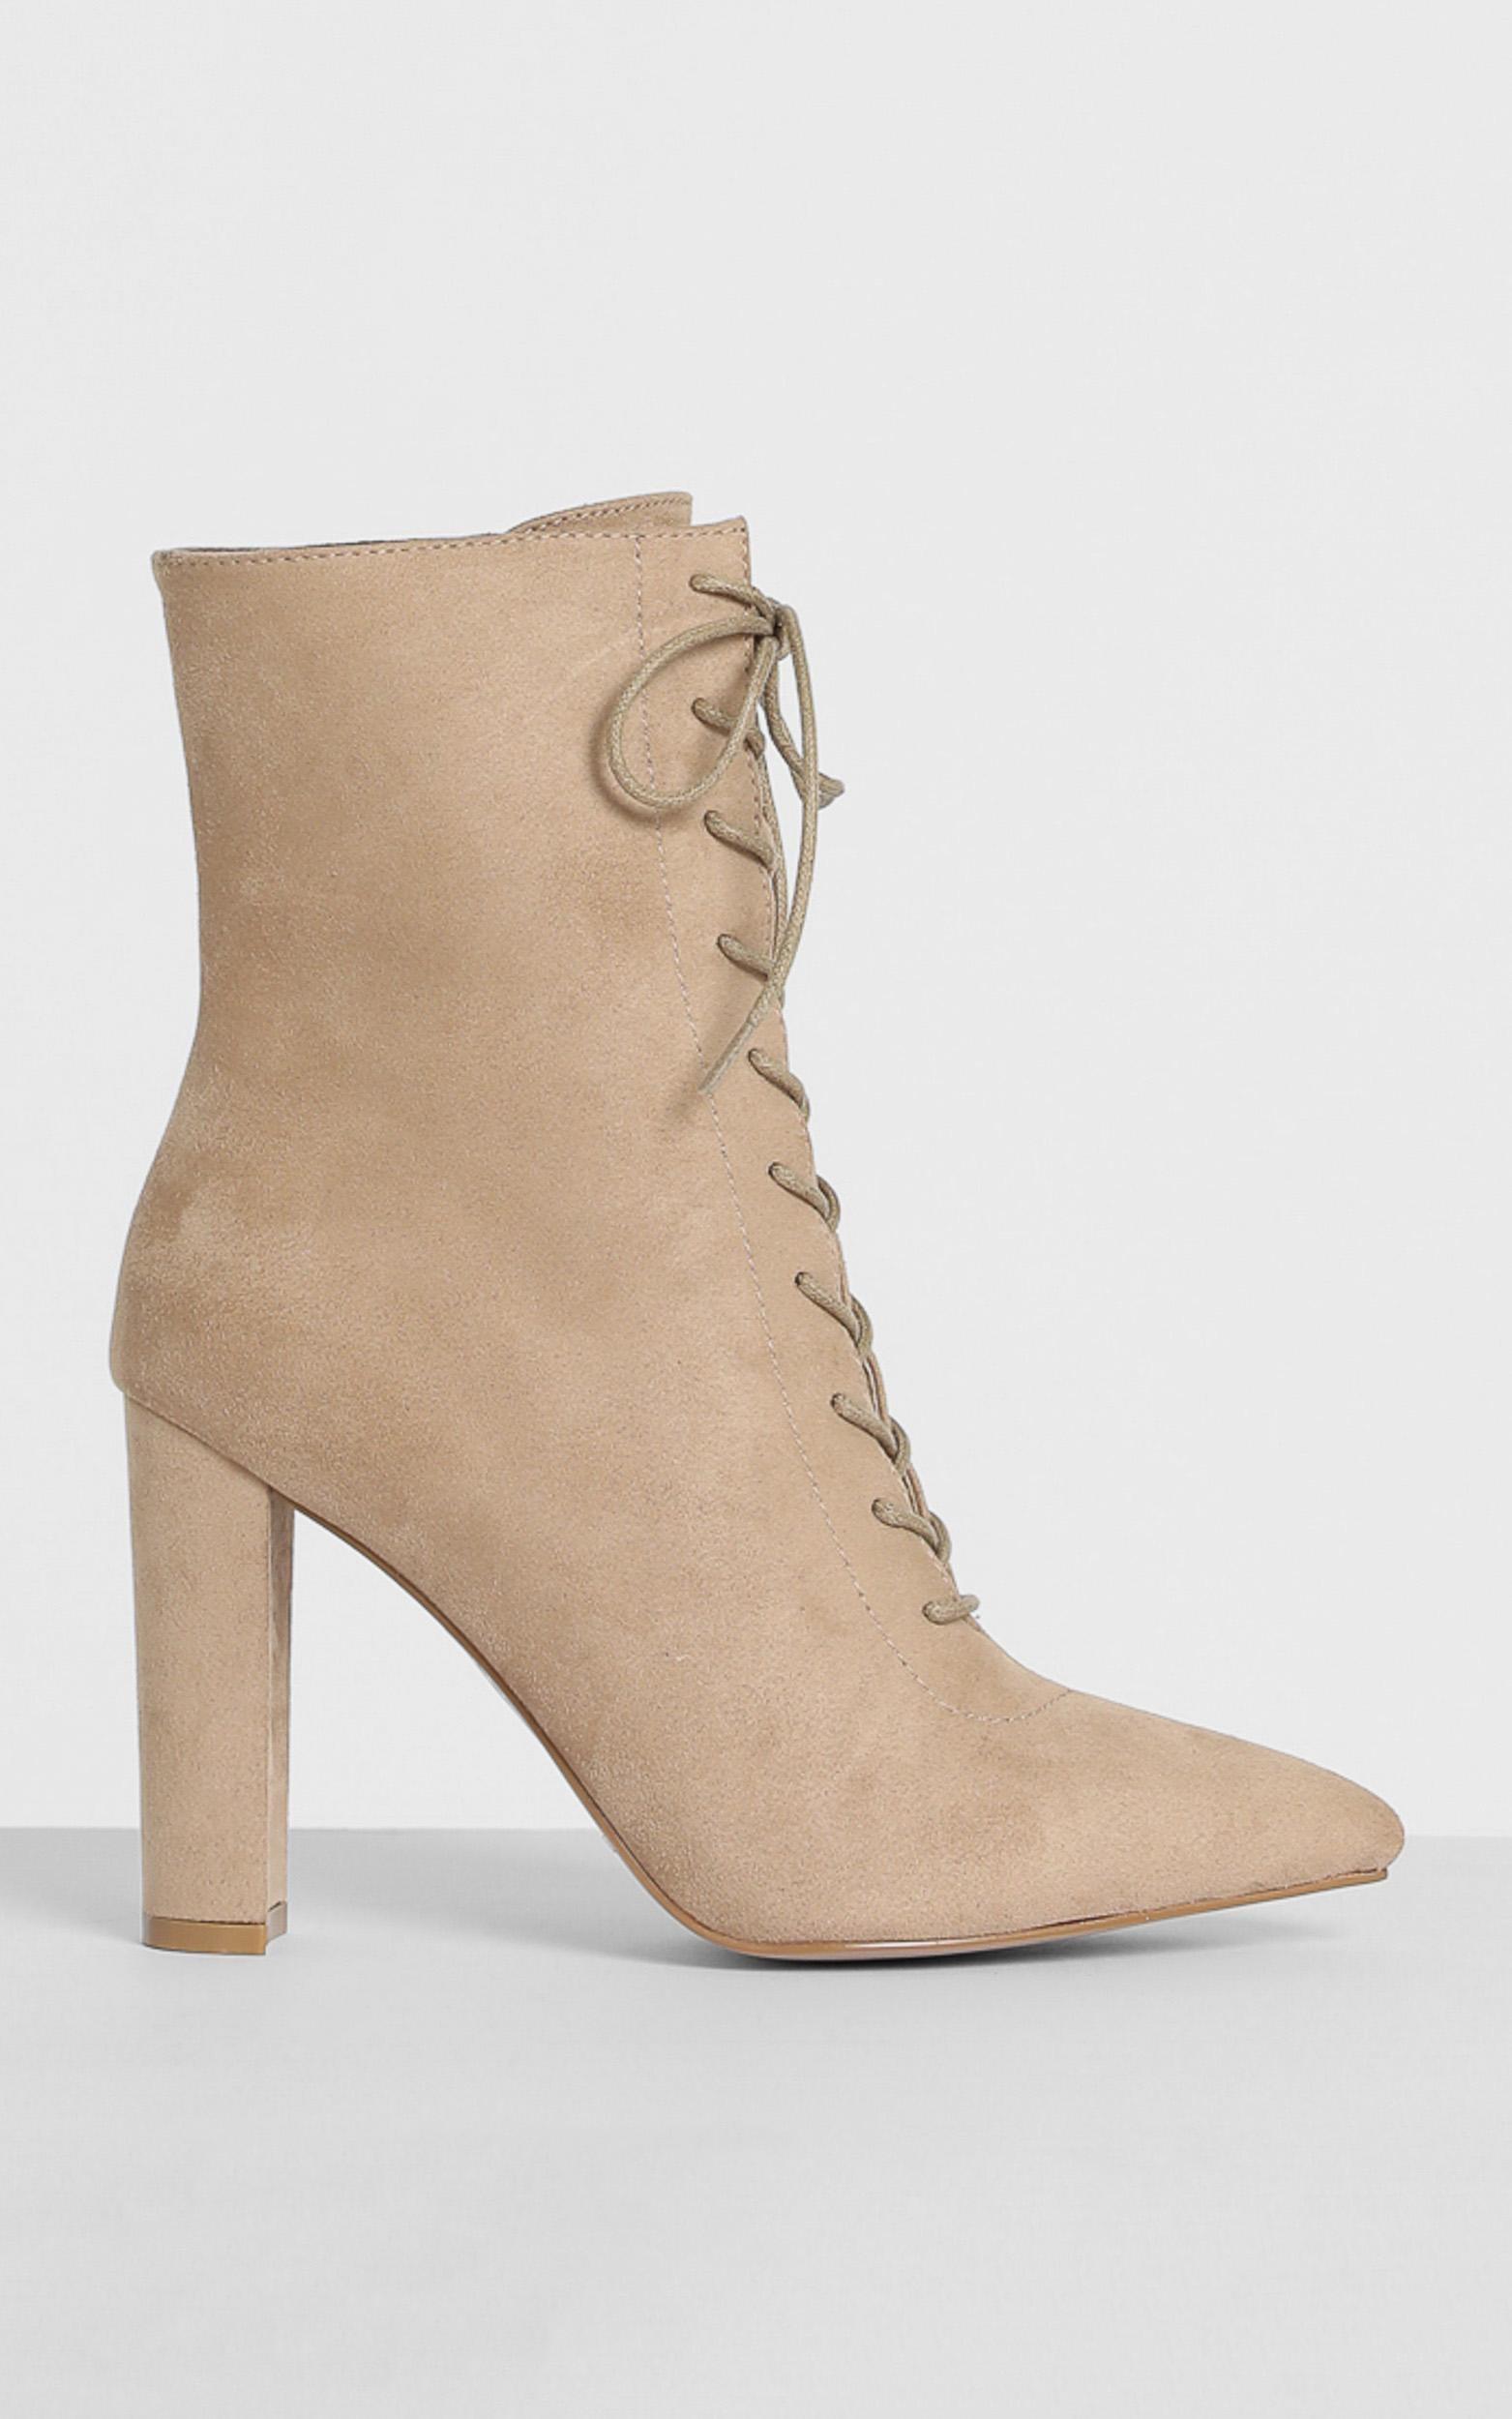 Billini - Kassia Boots in sand micro - 5, Tan, hi-res image number null